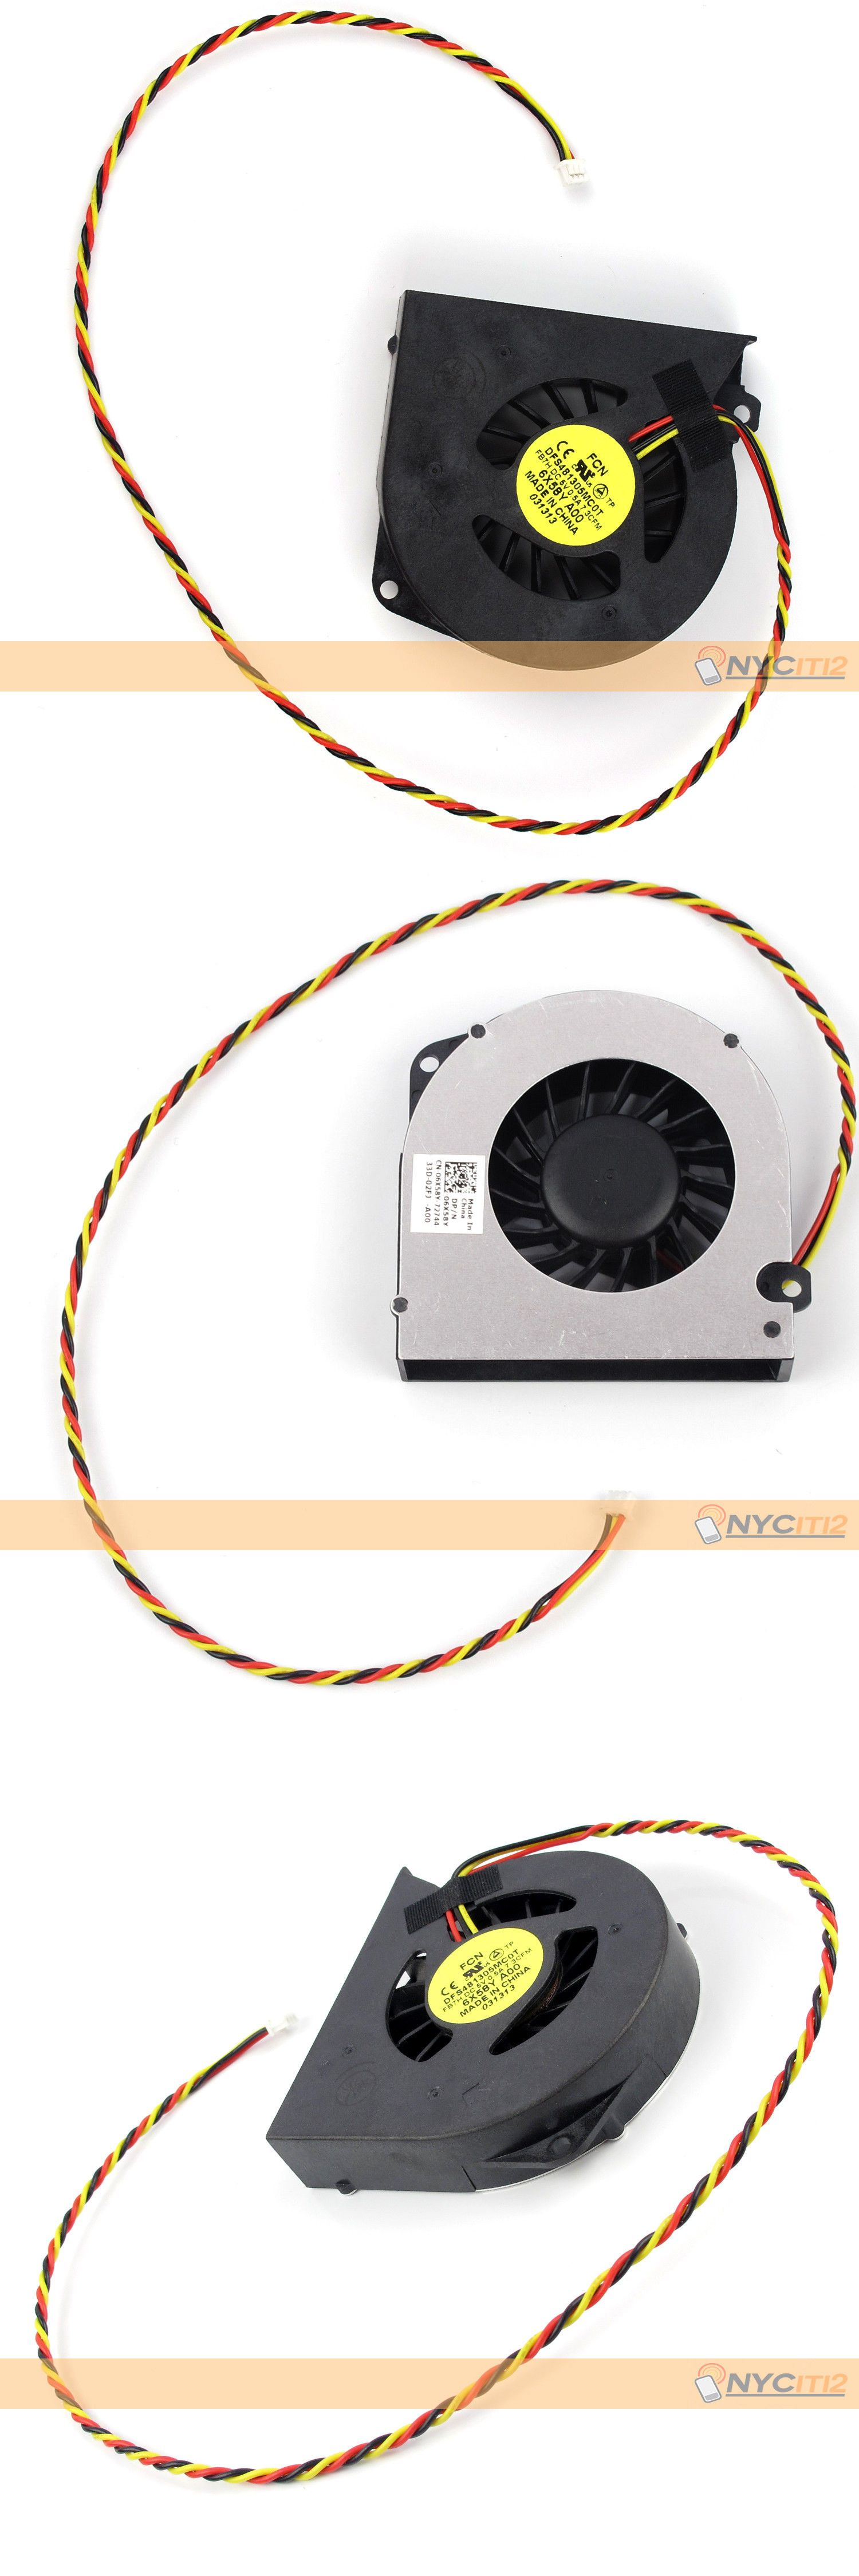 Cpu Fans And Heat Sinks 131486 Orig Cooling Fan For Dell Wiring Computer In Series Inspiron One 2330 Optiplex 9010 9020 6x58y 06x58y Buy It Now Only 1476 On Ebay